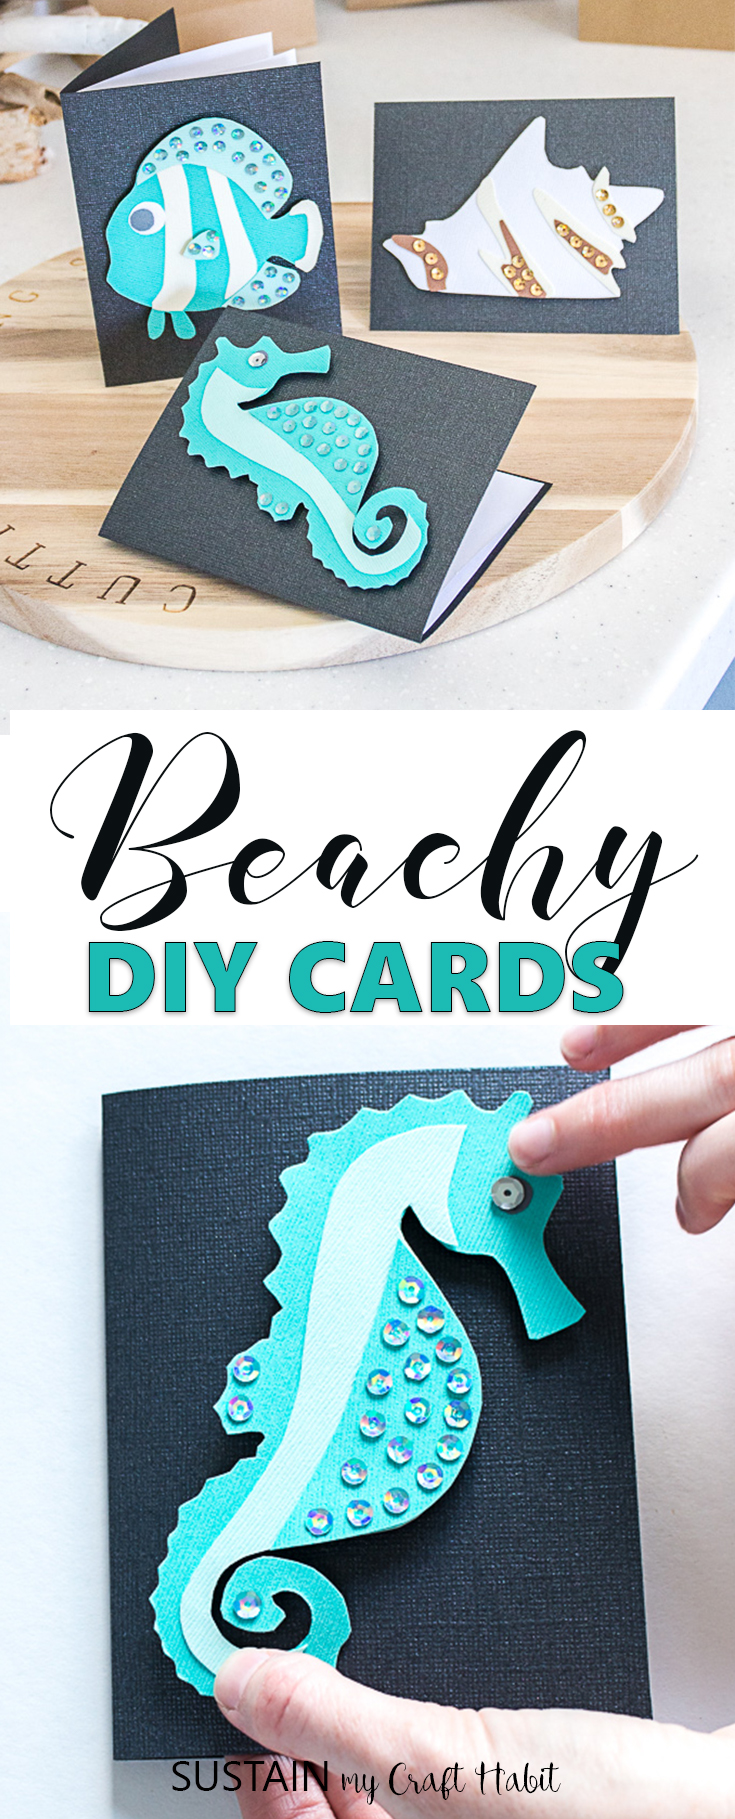 Adorable handmade beach-themed DIY cards perfect for any occasion